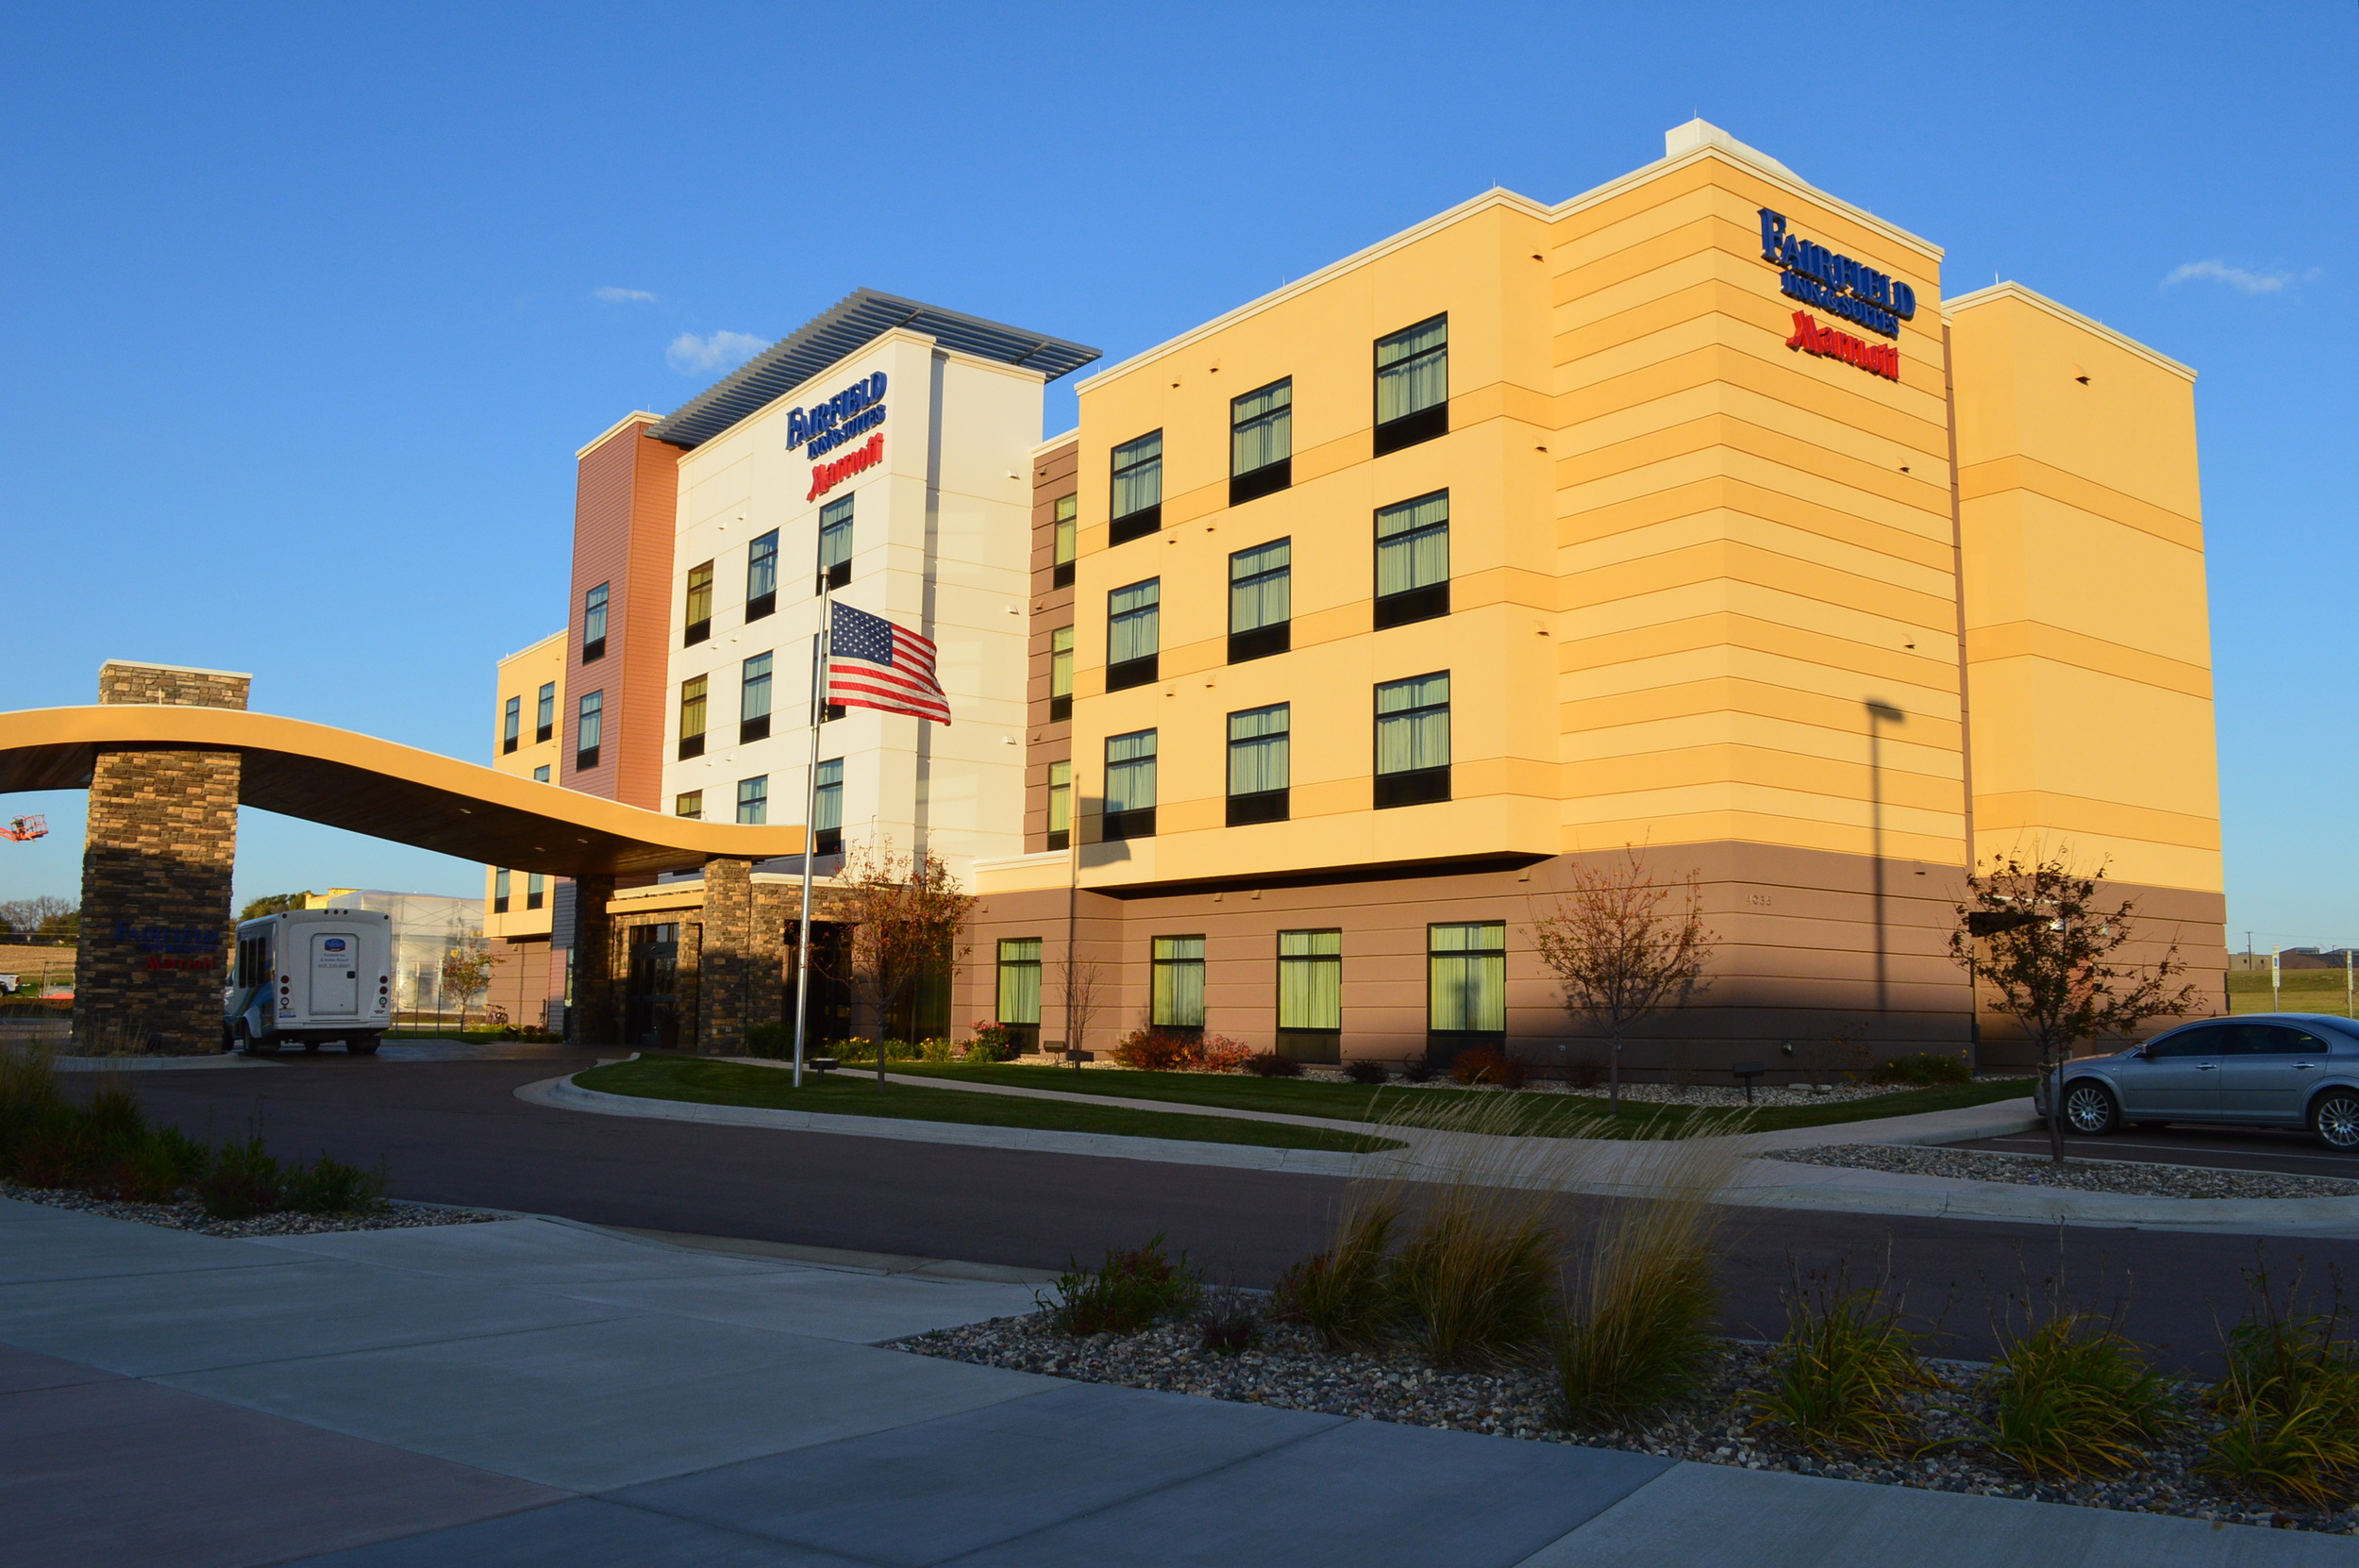 Fairfield Inn & Suites Airport